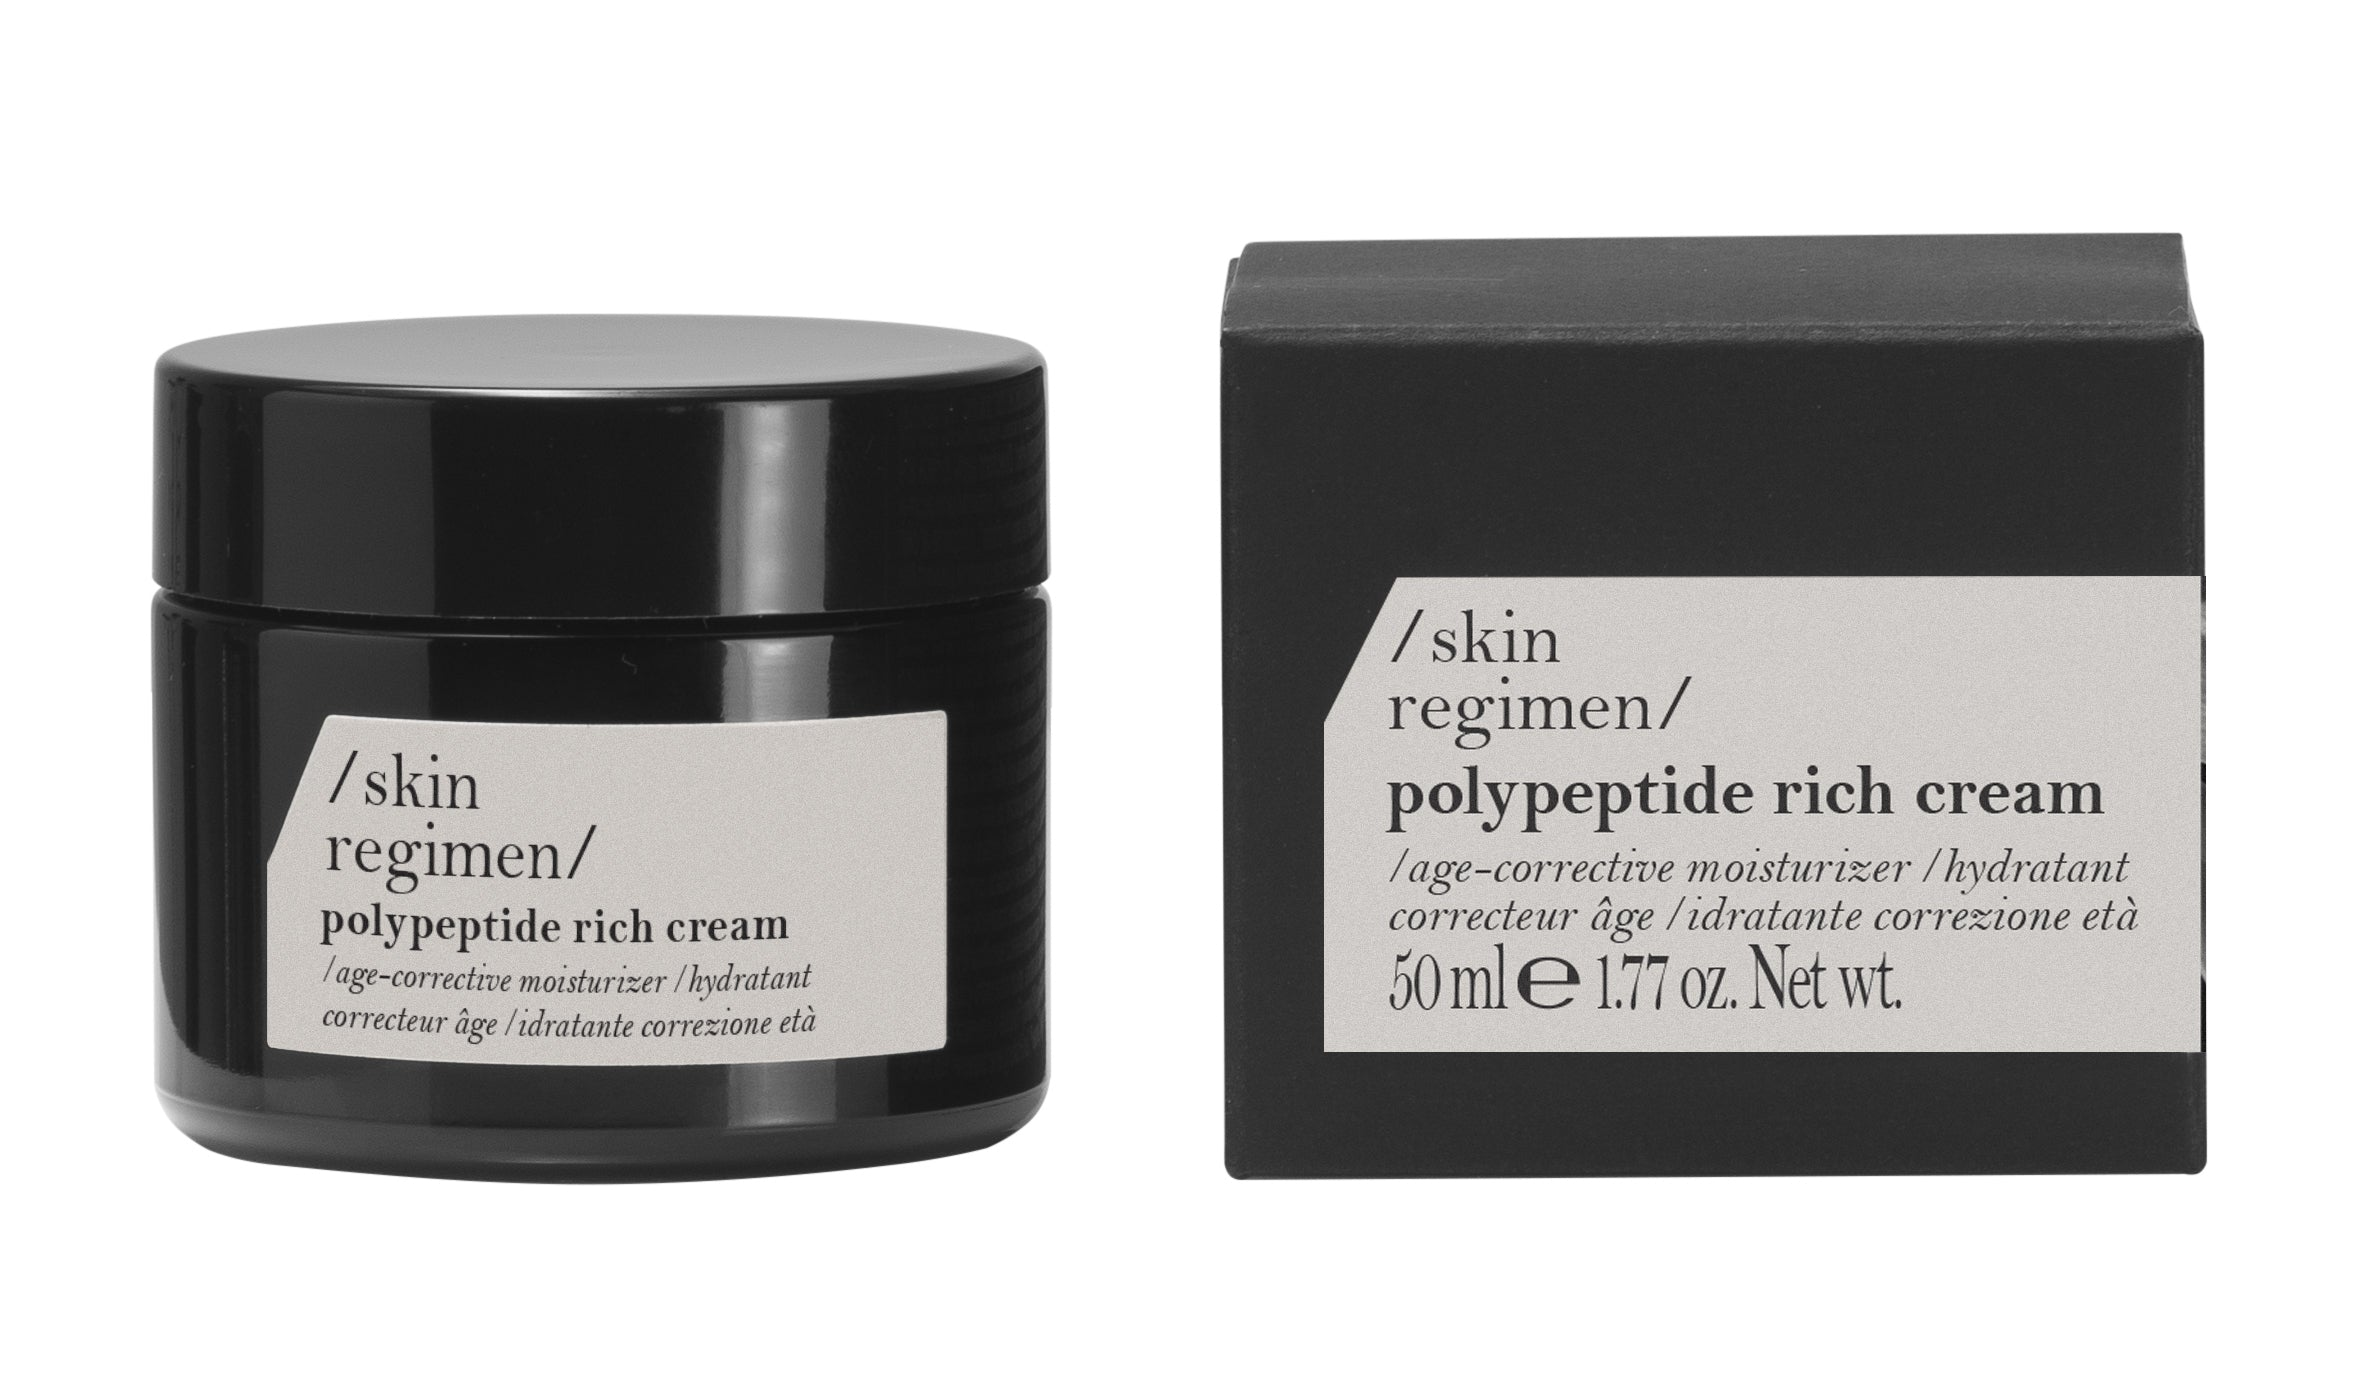 skin regimen polypeptide rich cream